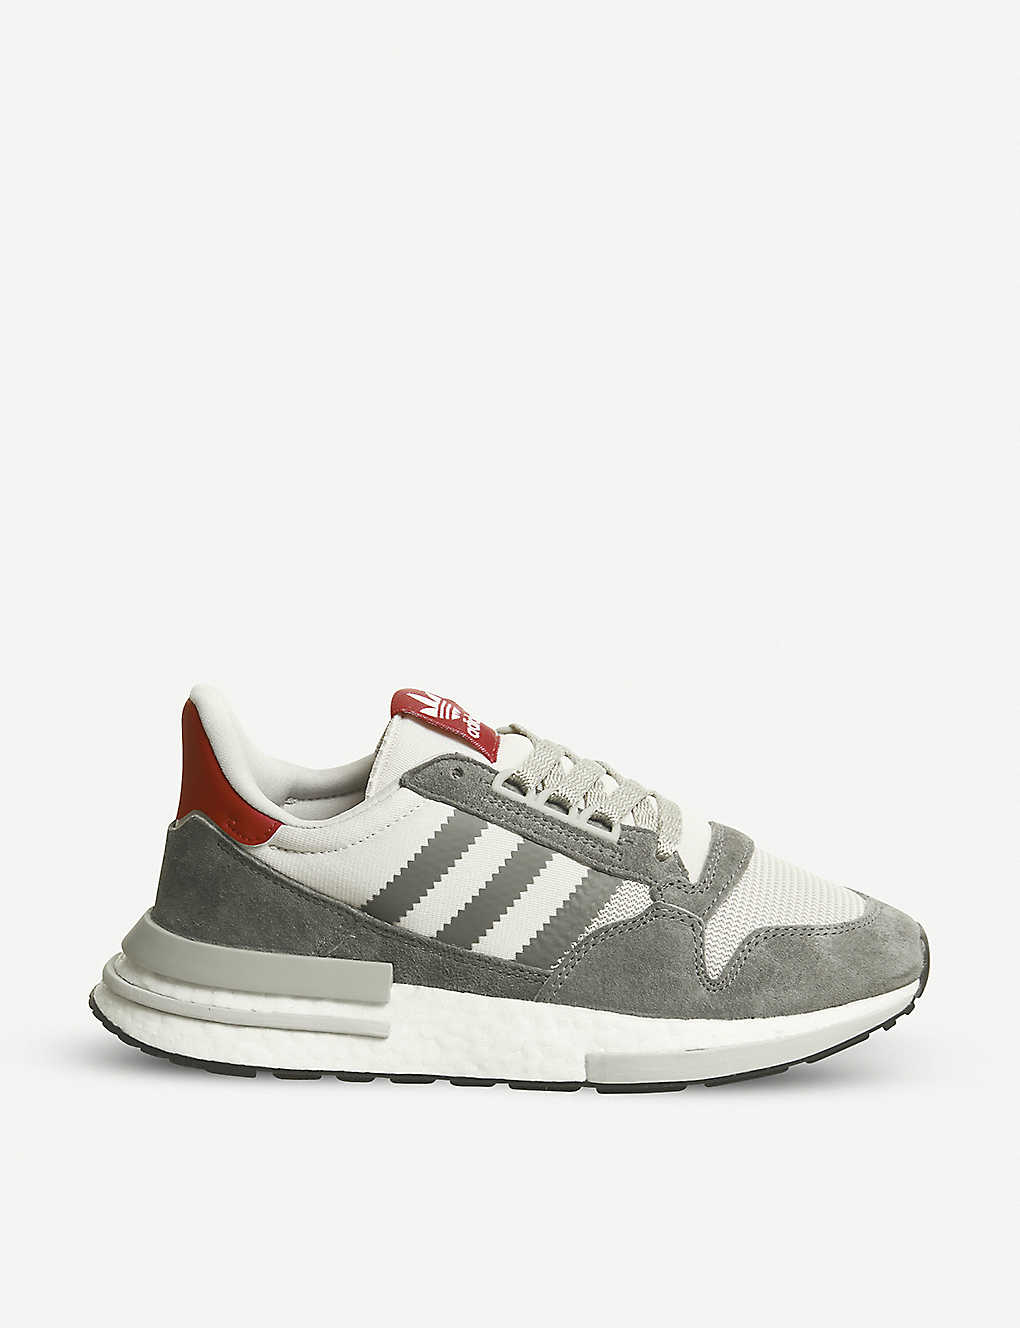 on sale 42bd7 ea6ce ZX 500 RM suede and mesh trainers - Grey four white ...